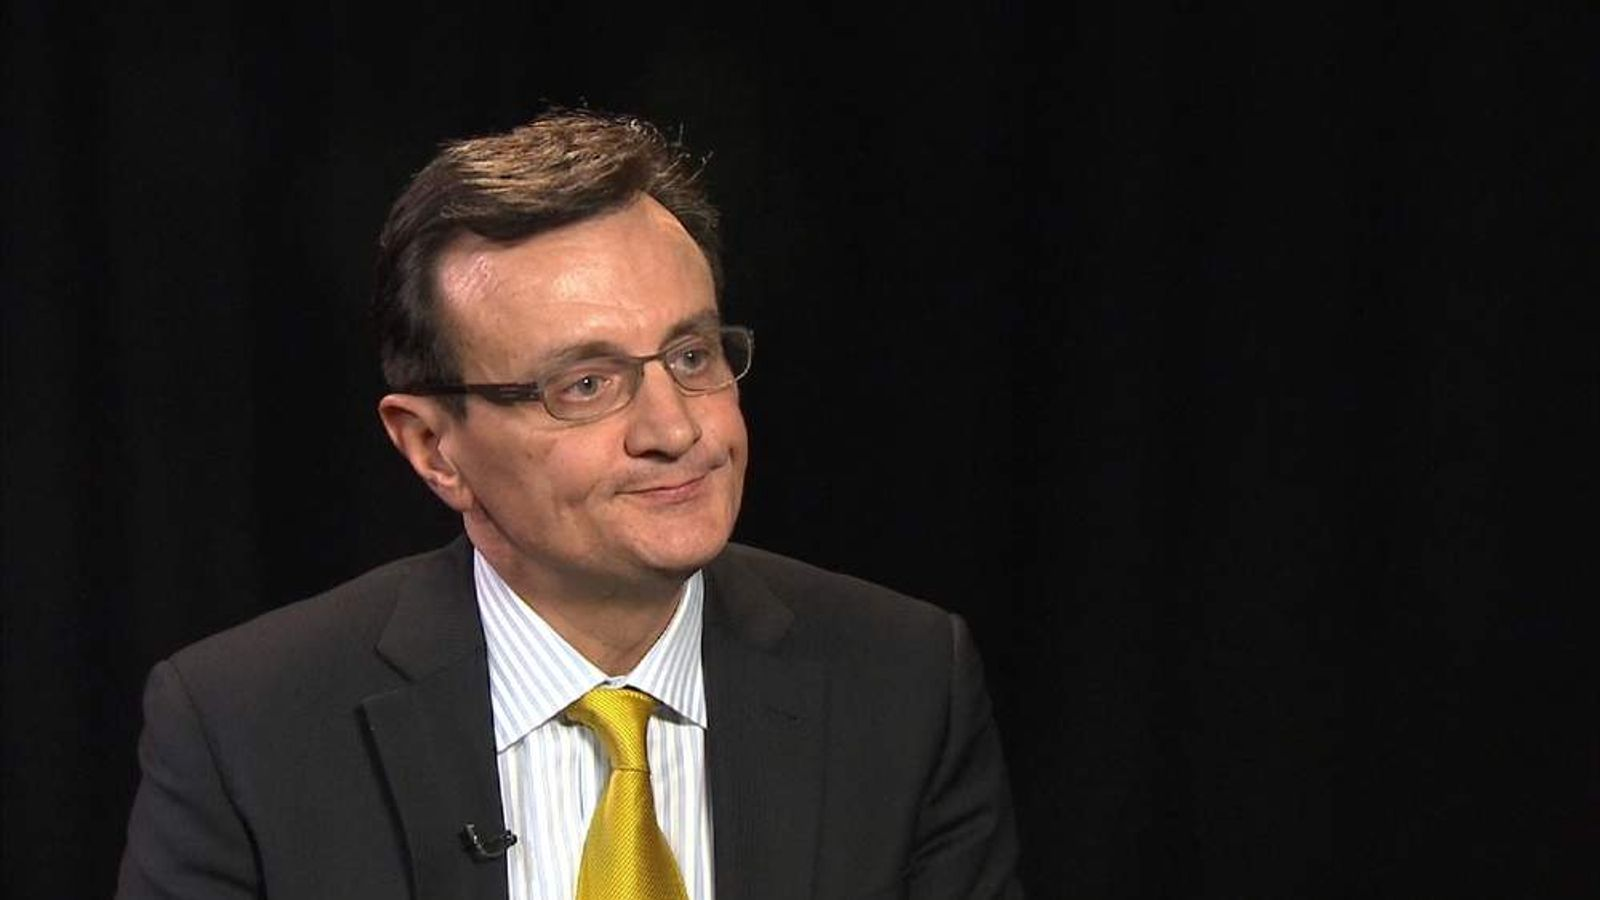 AstraZeneca's Chief Executive Pascal Soriot